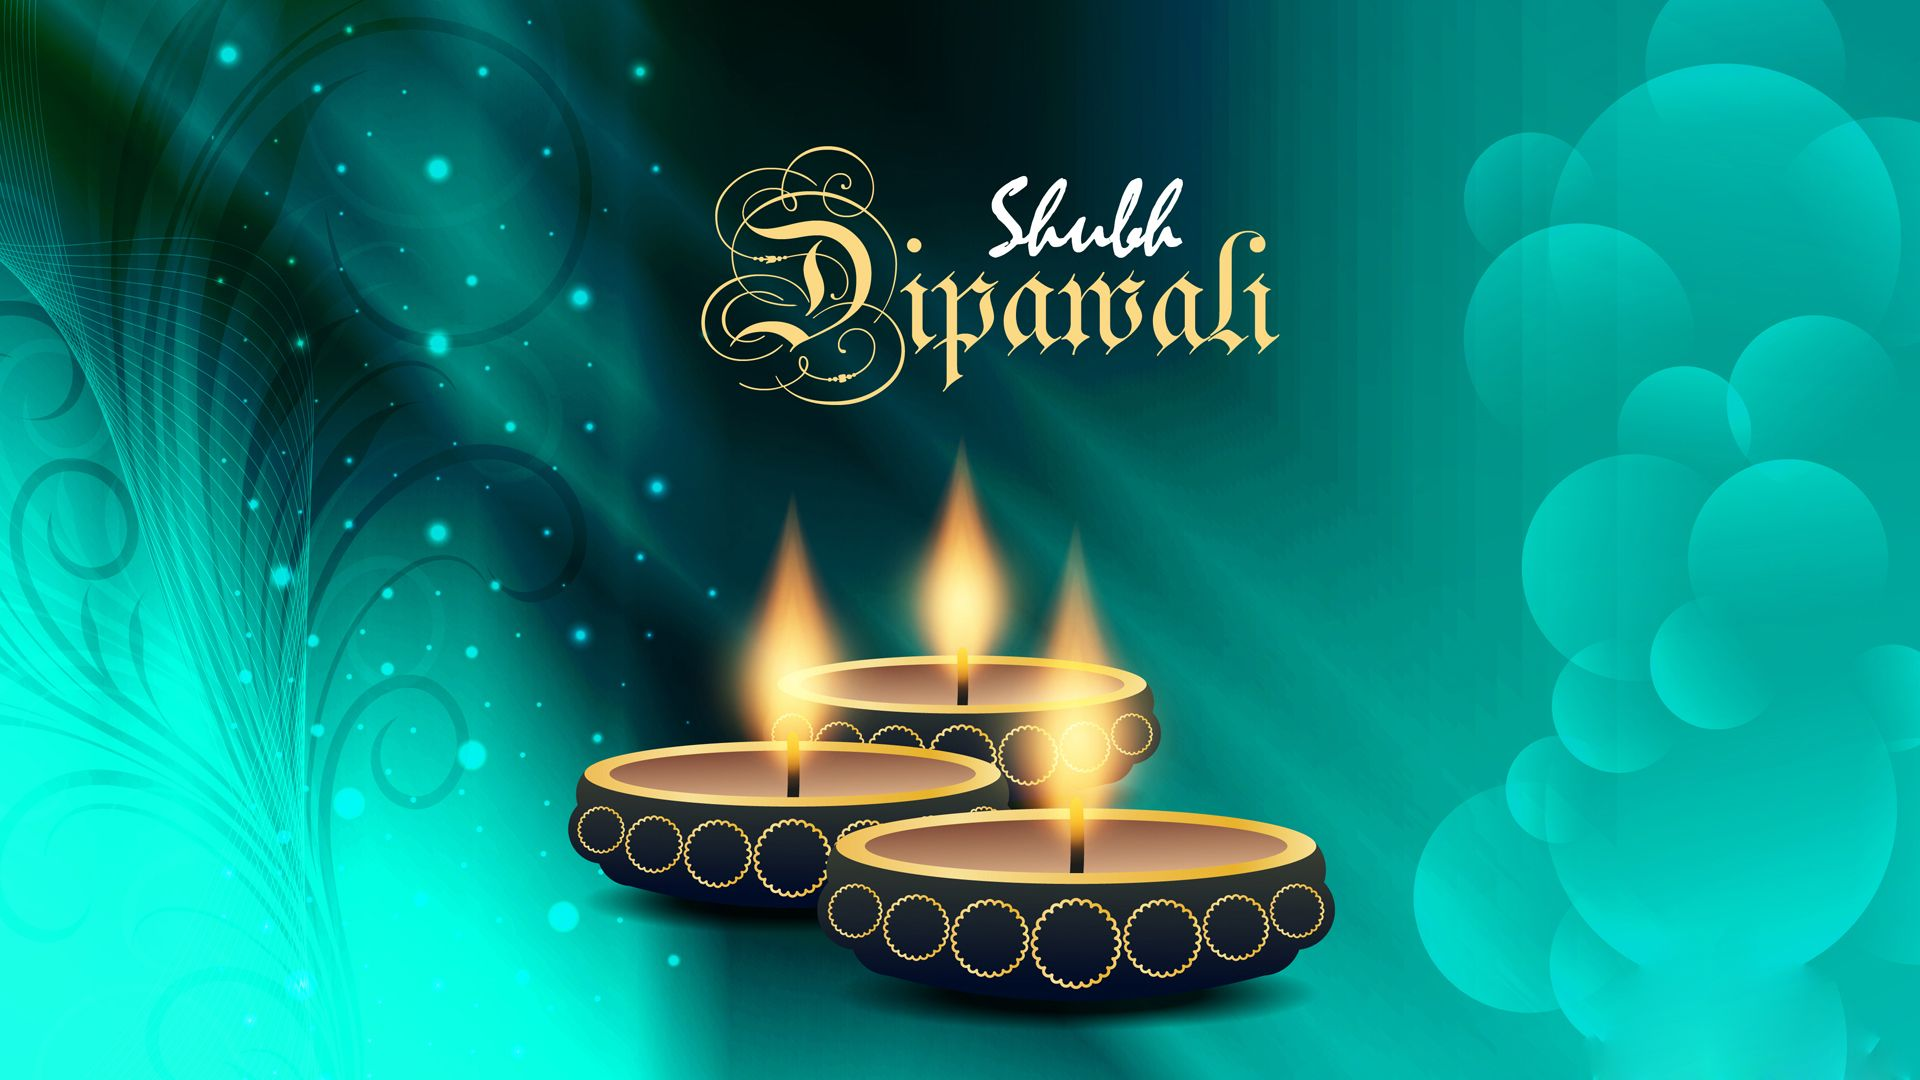 Happy diwali download free latest images and greeting cards 2015 happy diwali download free latest images and greeting cards 2015 httpwww kristyandbryce Gallery